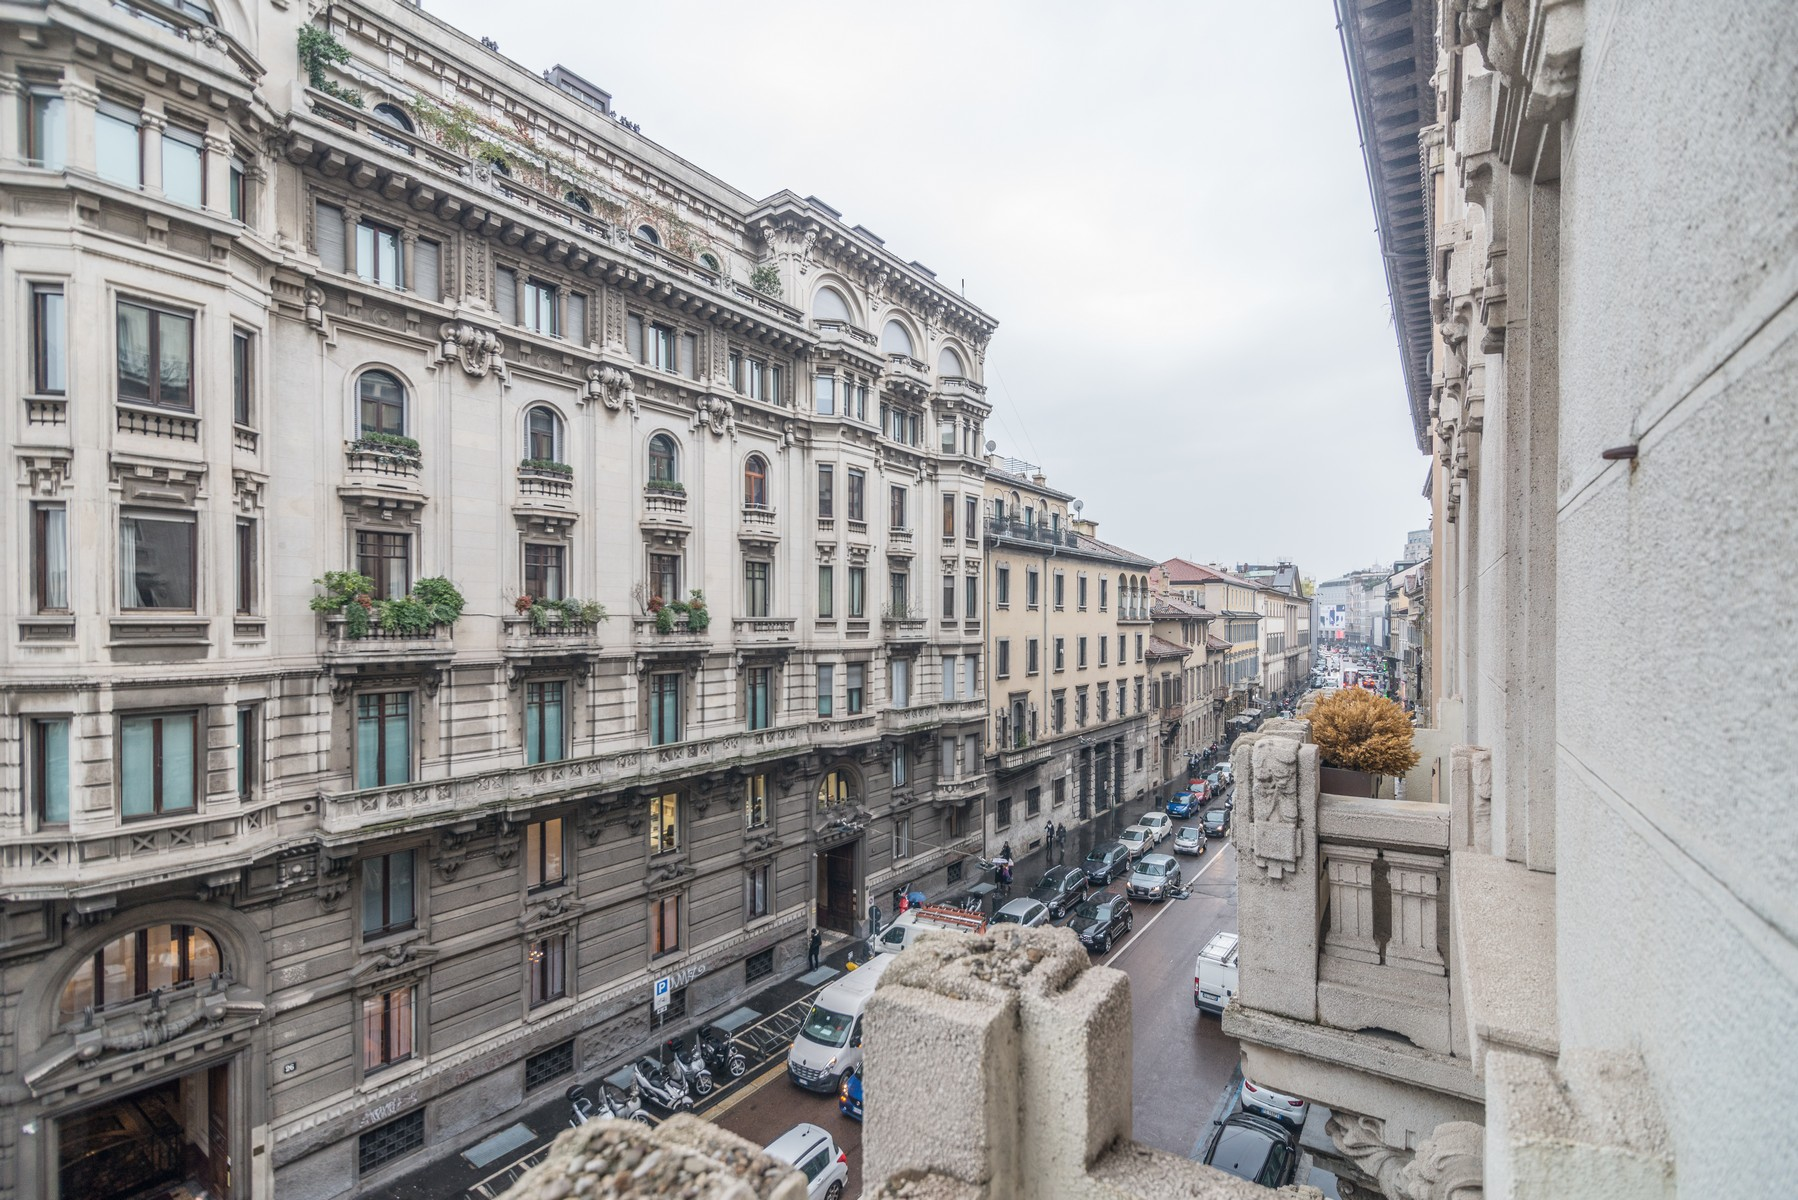 Additional photo for property listing at Elegant apartment in historic Palazzo Corso Venezia Milano, Milan 20121 Italia